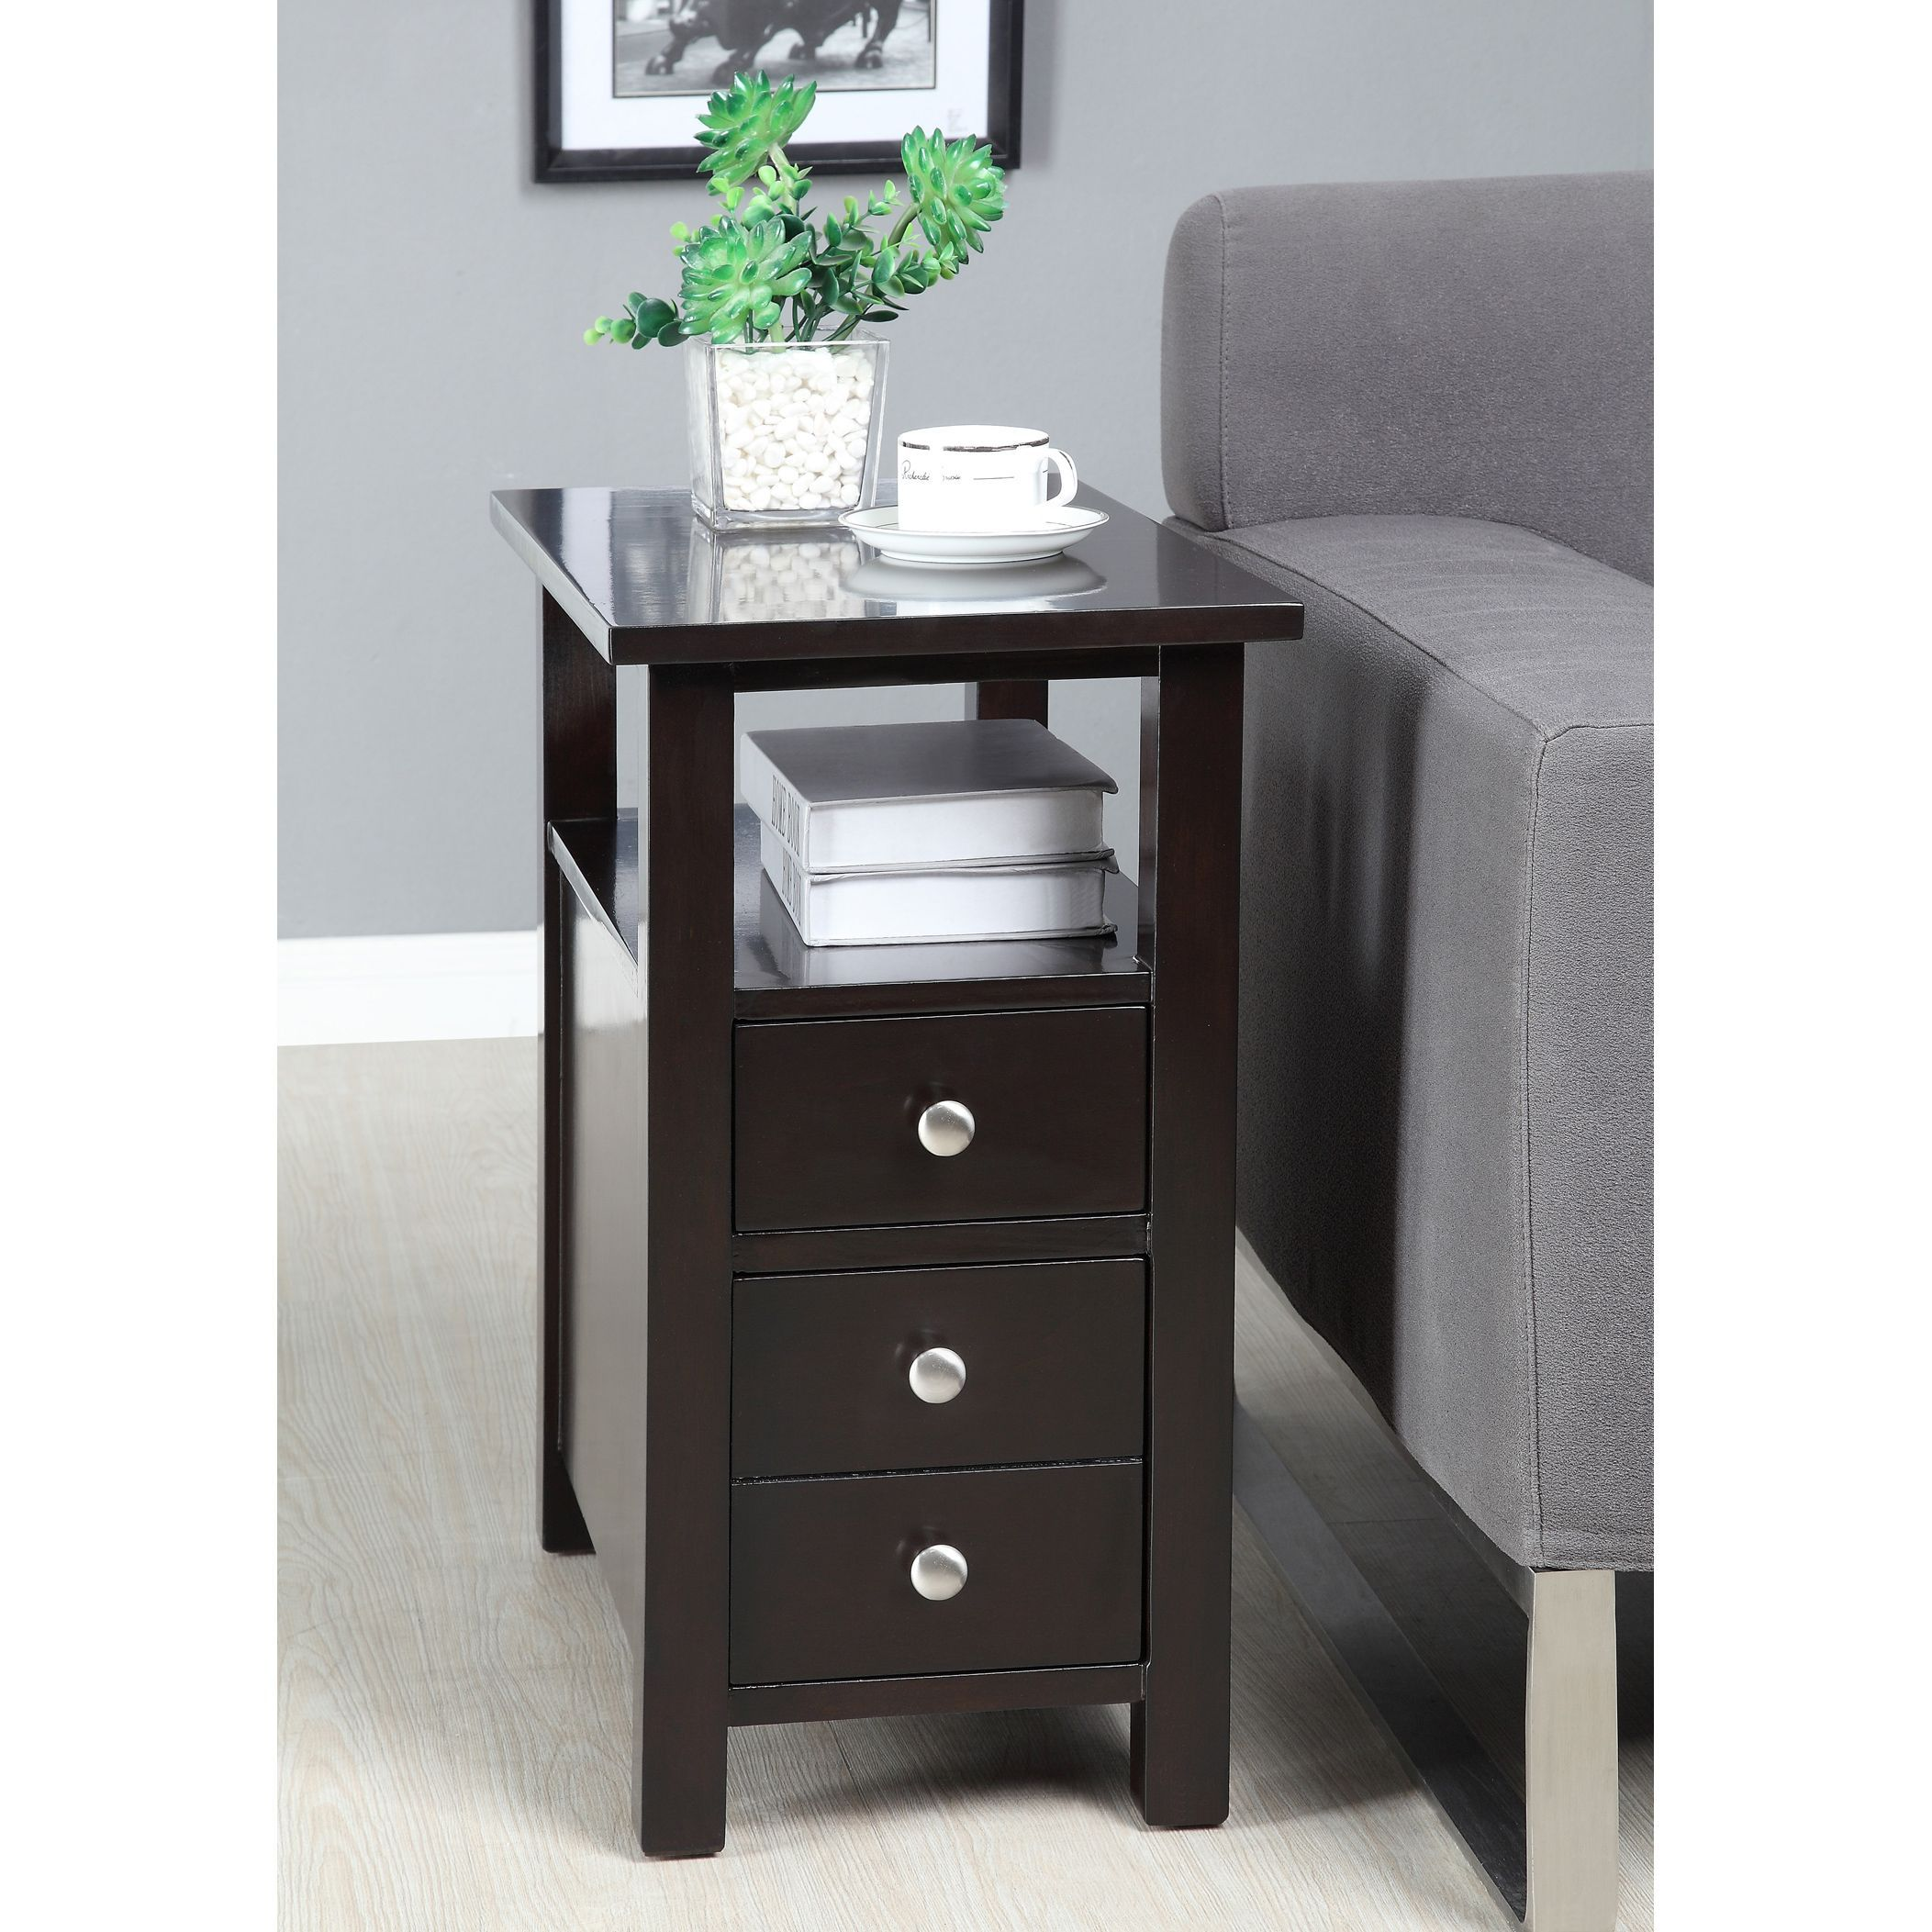 Online Shopping Bedding Furniture Electronics Jewelry Clothing More End Tables With Drawers Sofa End Tables Chair Side Table